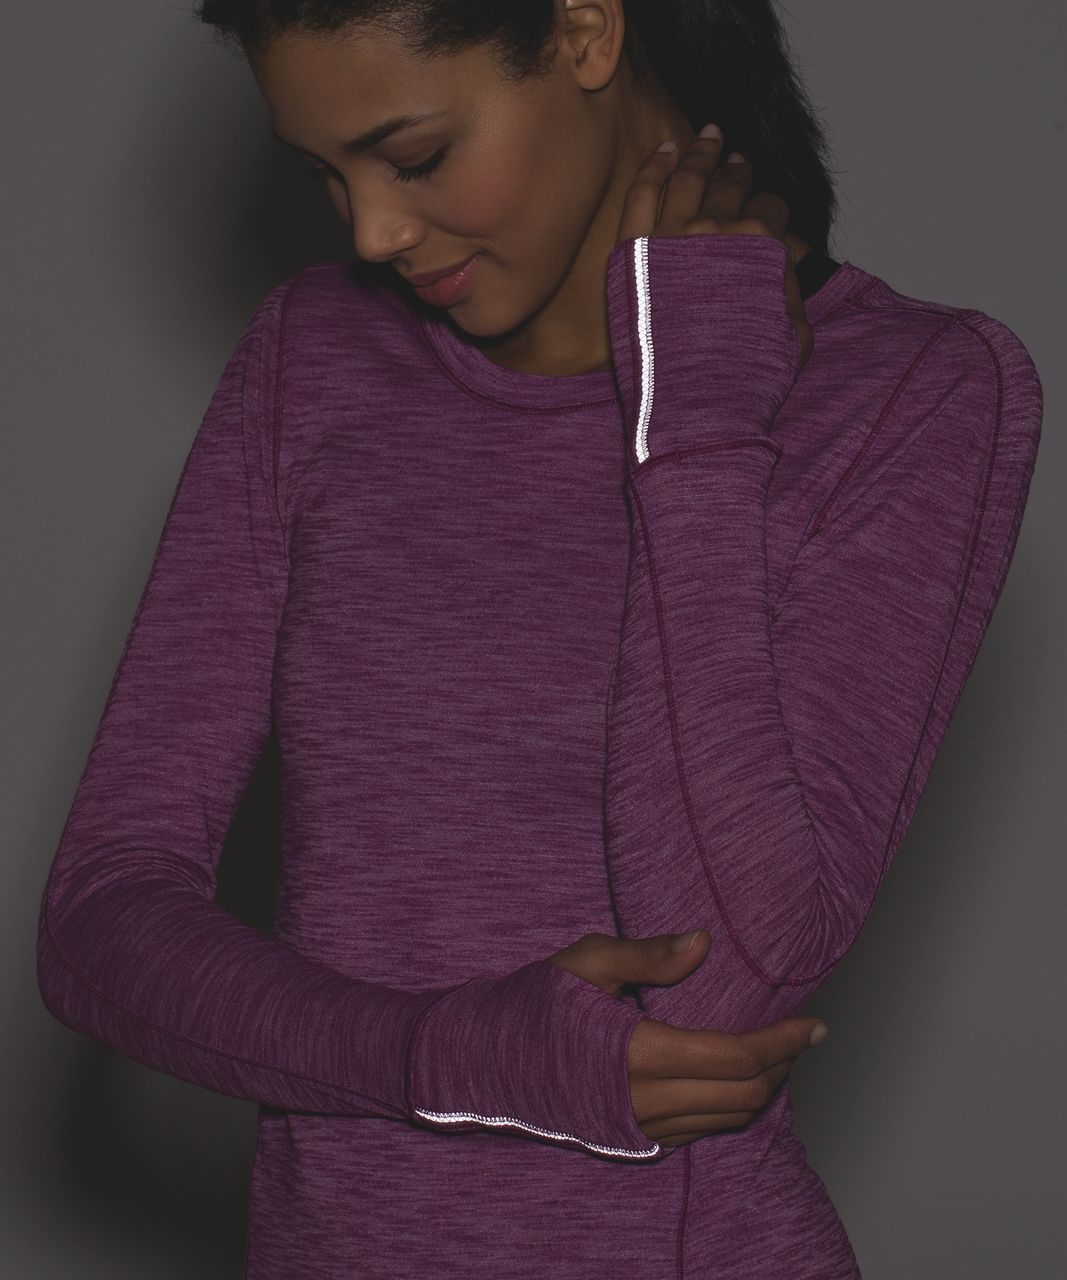 Lululemon 5 Mile Long Sleeve - Heathered Regal Plum